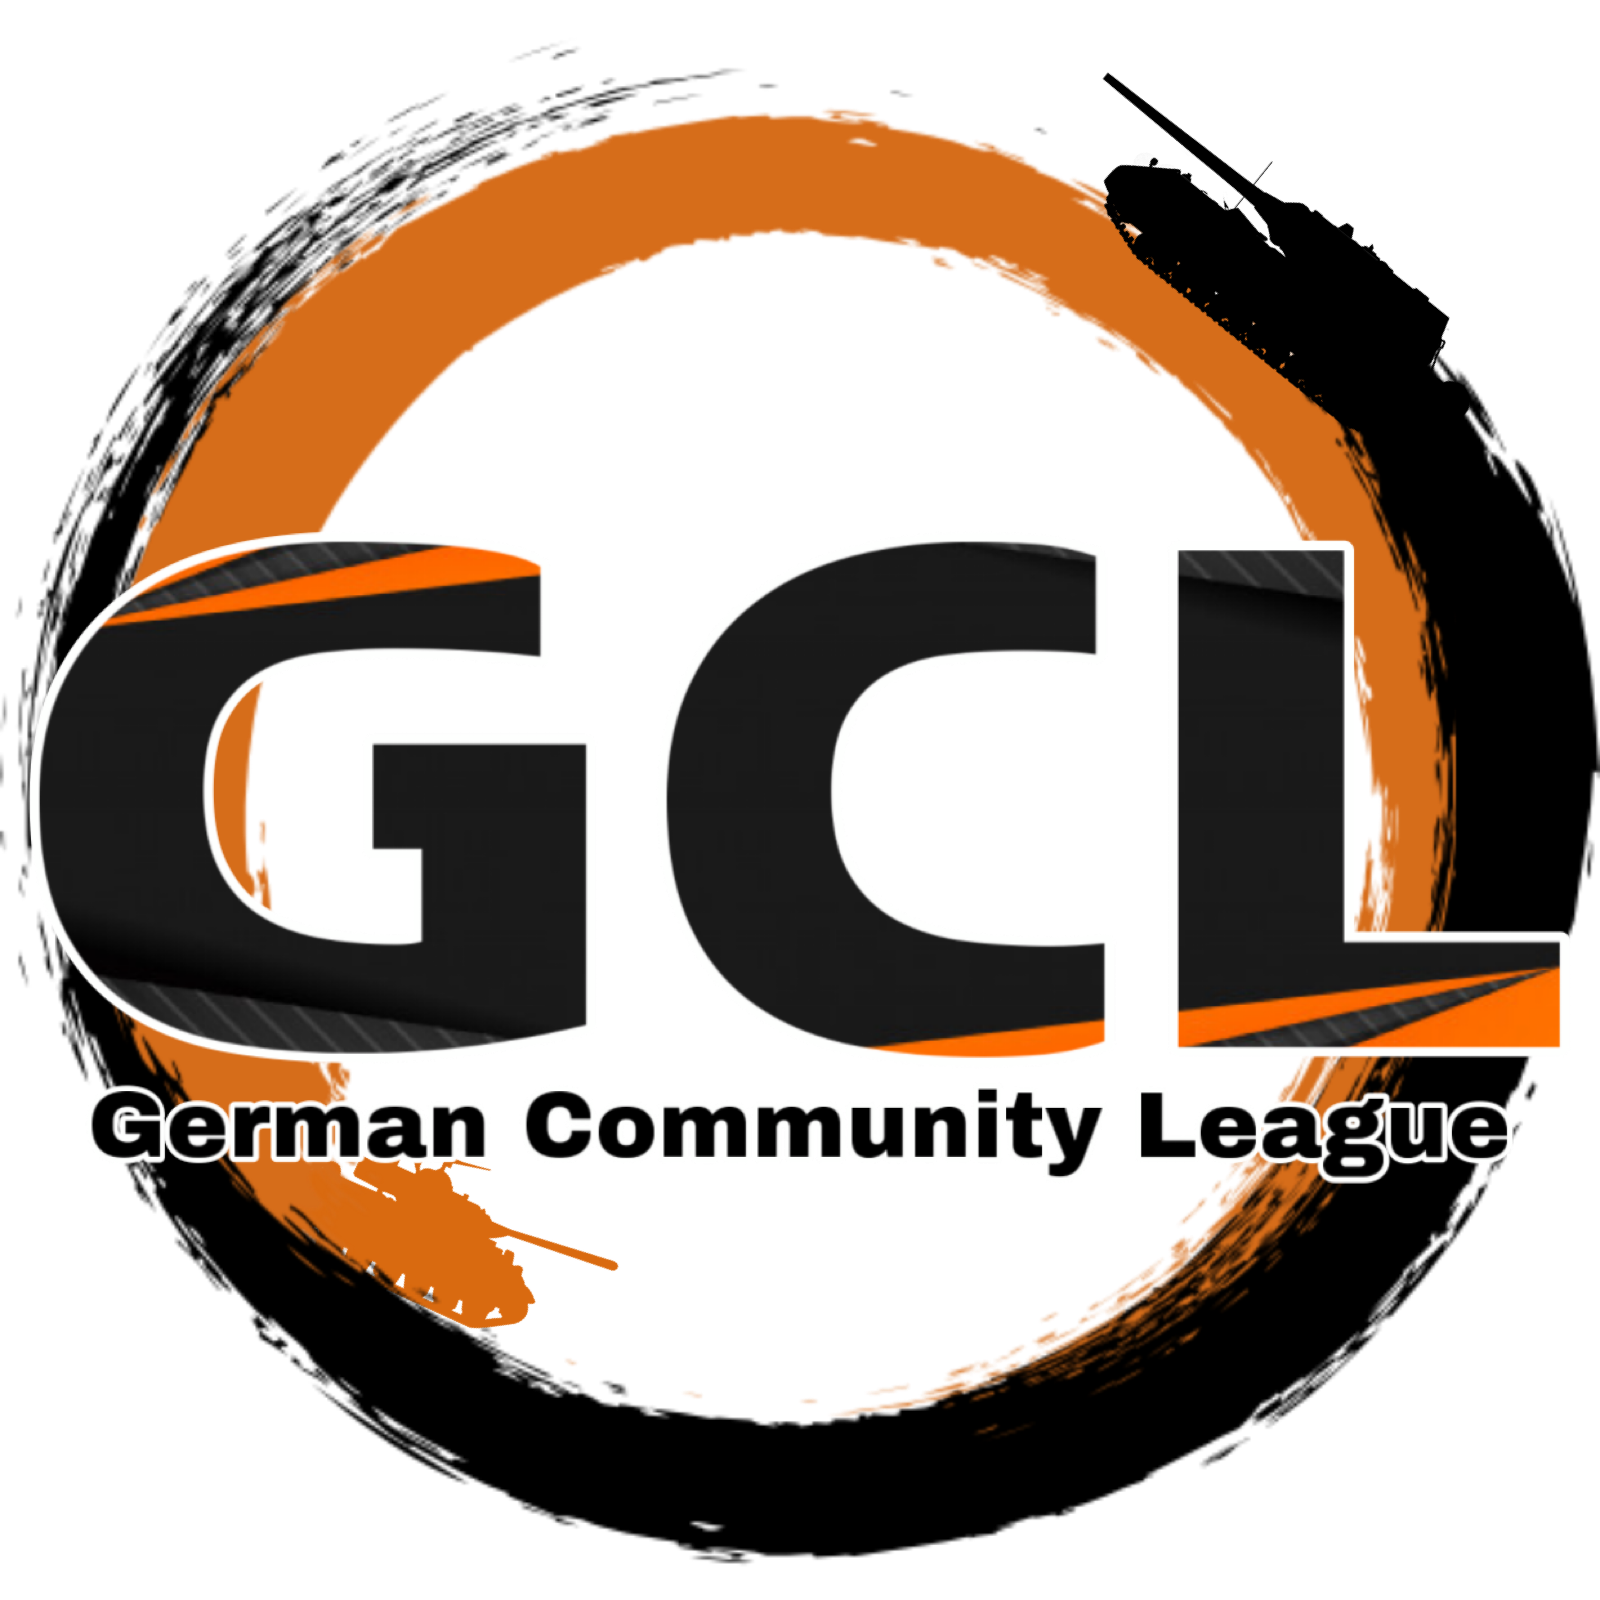 germancommunityleague.com